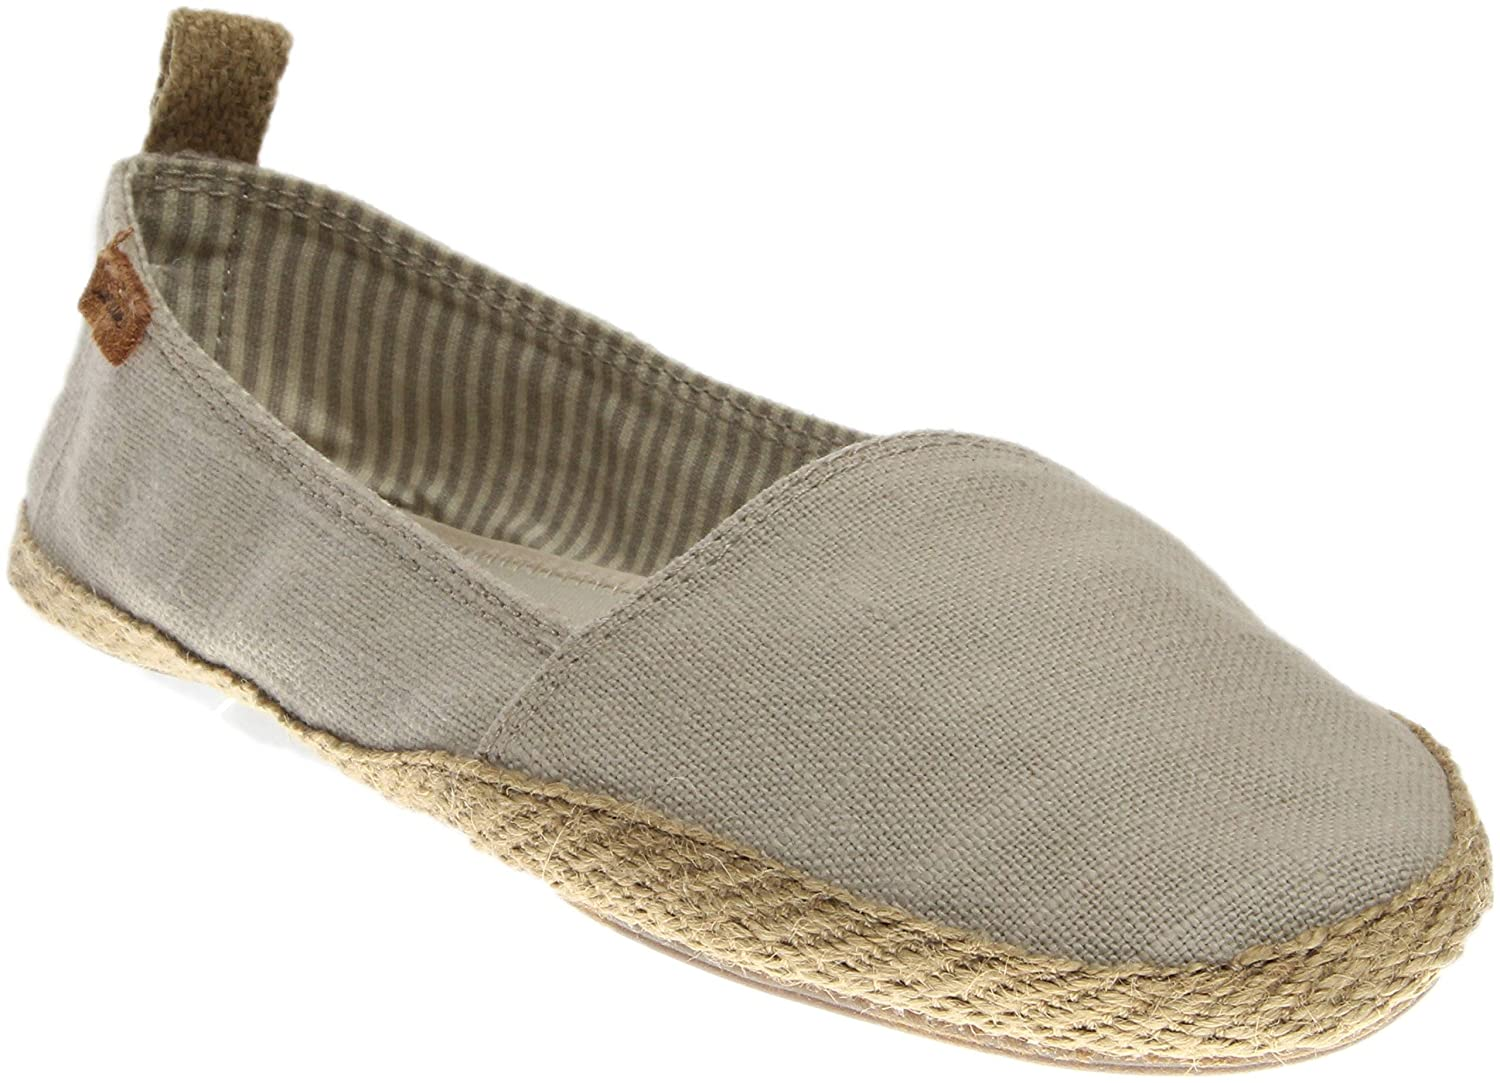 Sanuk Espie Slip On Schuhes Damens Natural 2017 Schuhe